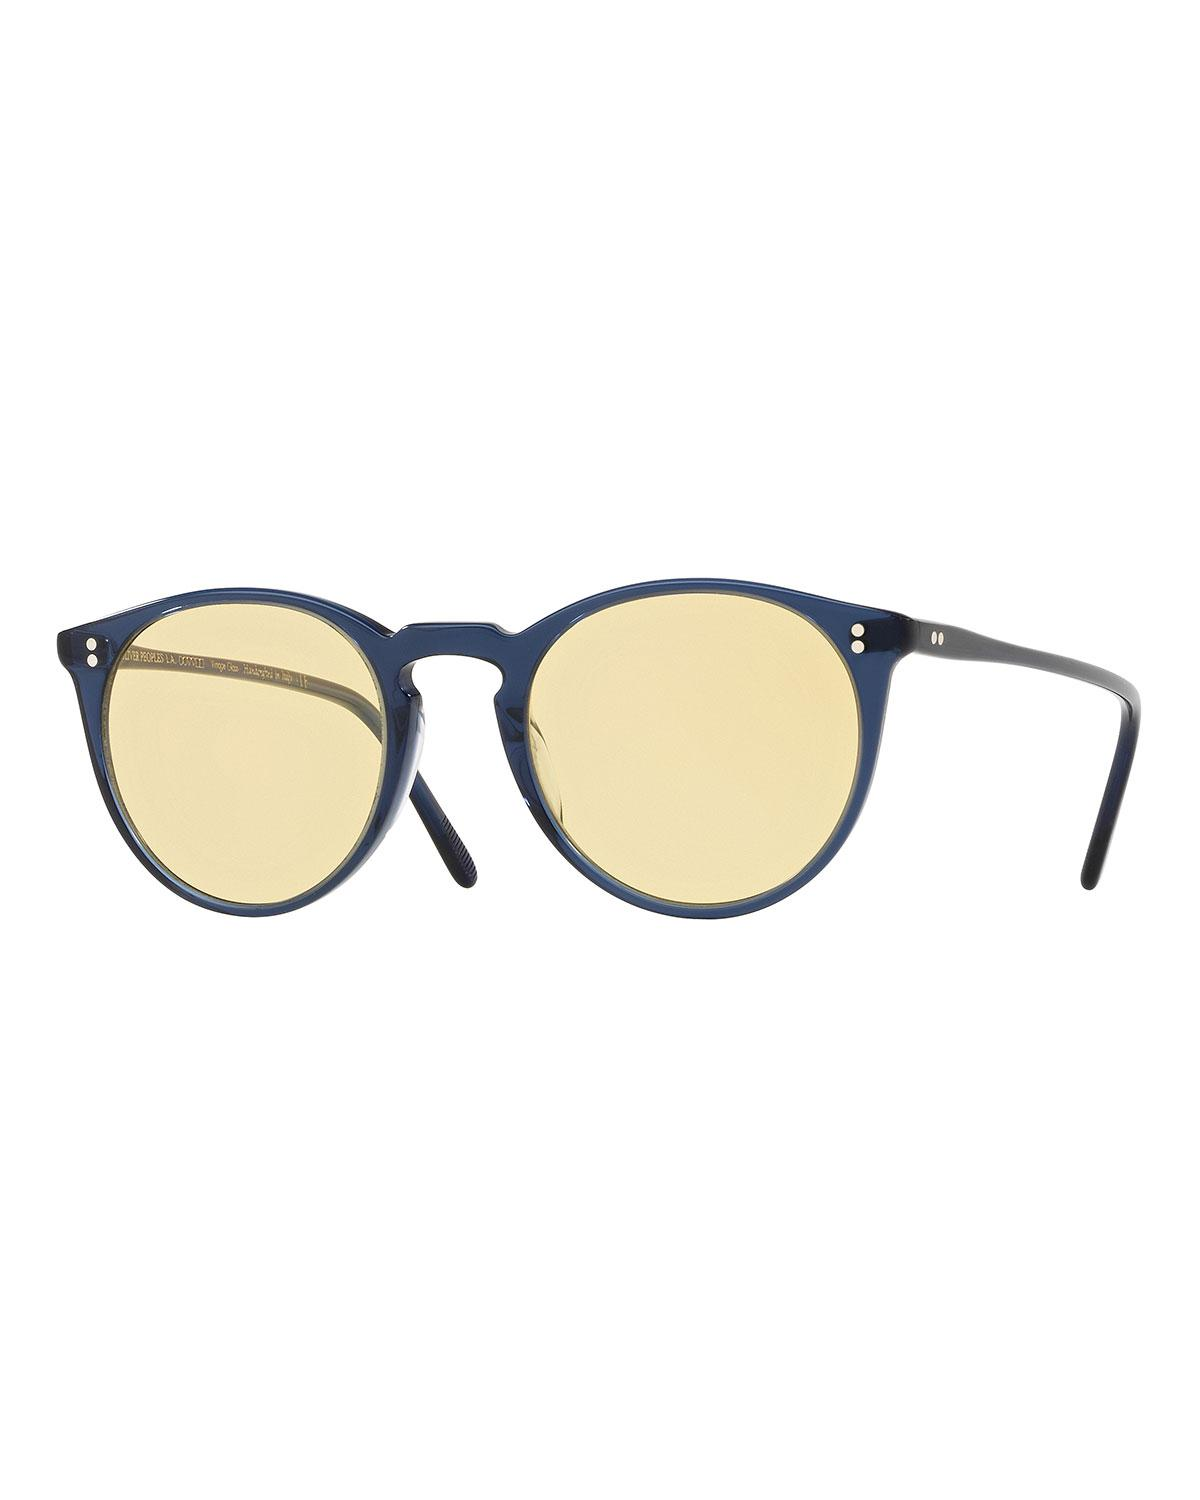 14f93ebf31 Lyst - Oliver Peoples O malley Peaked Round Sunglasses in Blue